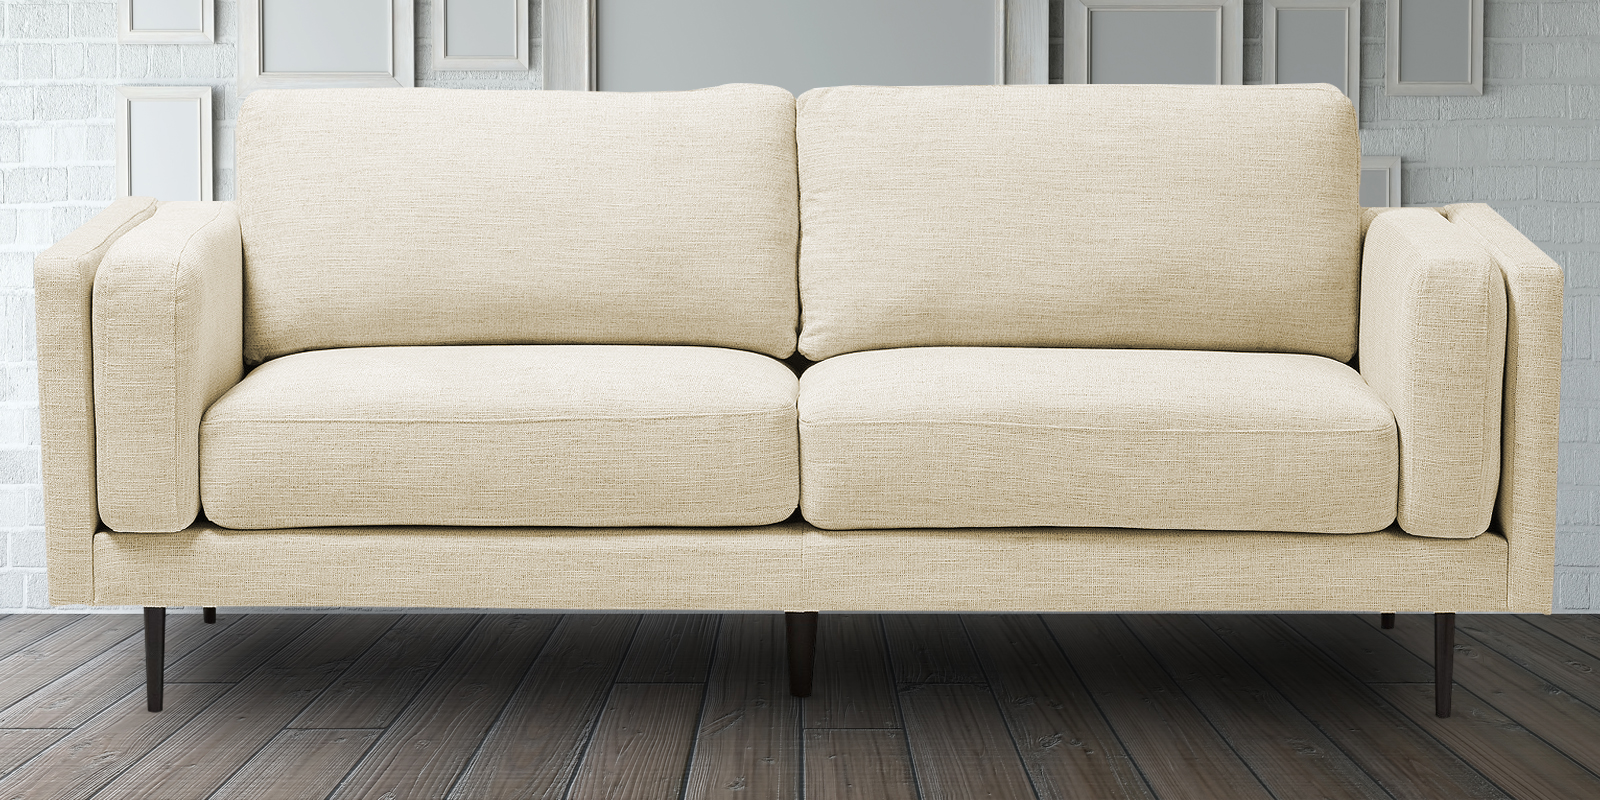 Complementing Spacious Three Seater Sofa In Light Beige